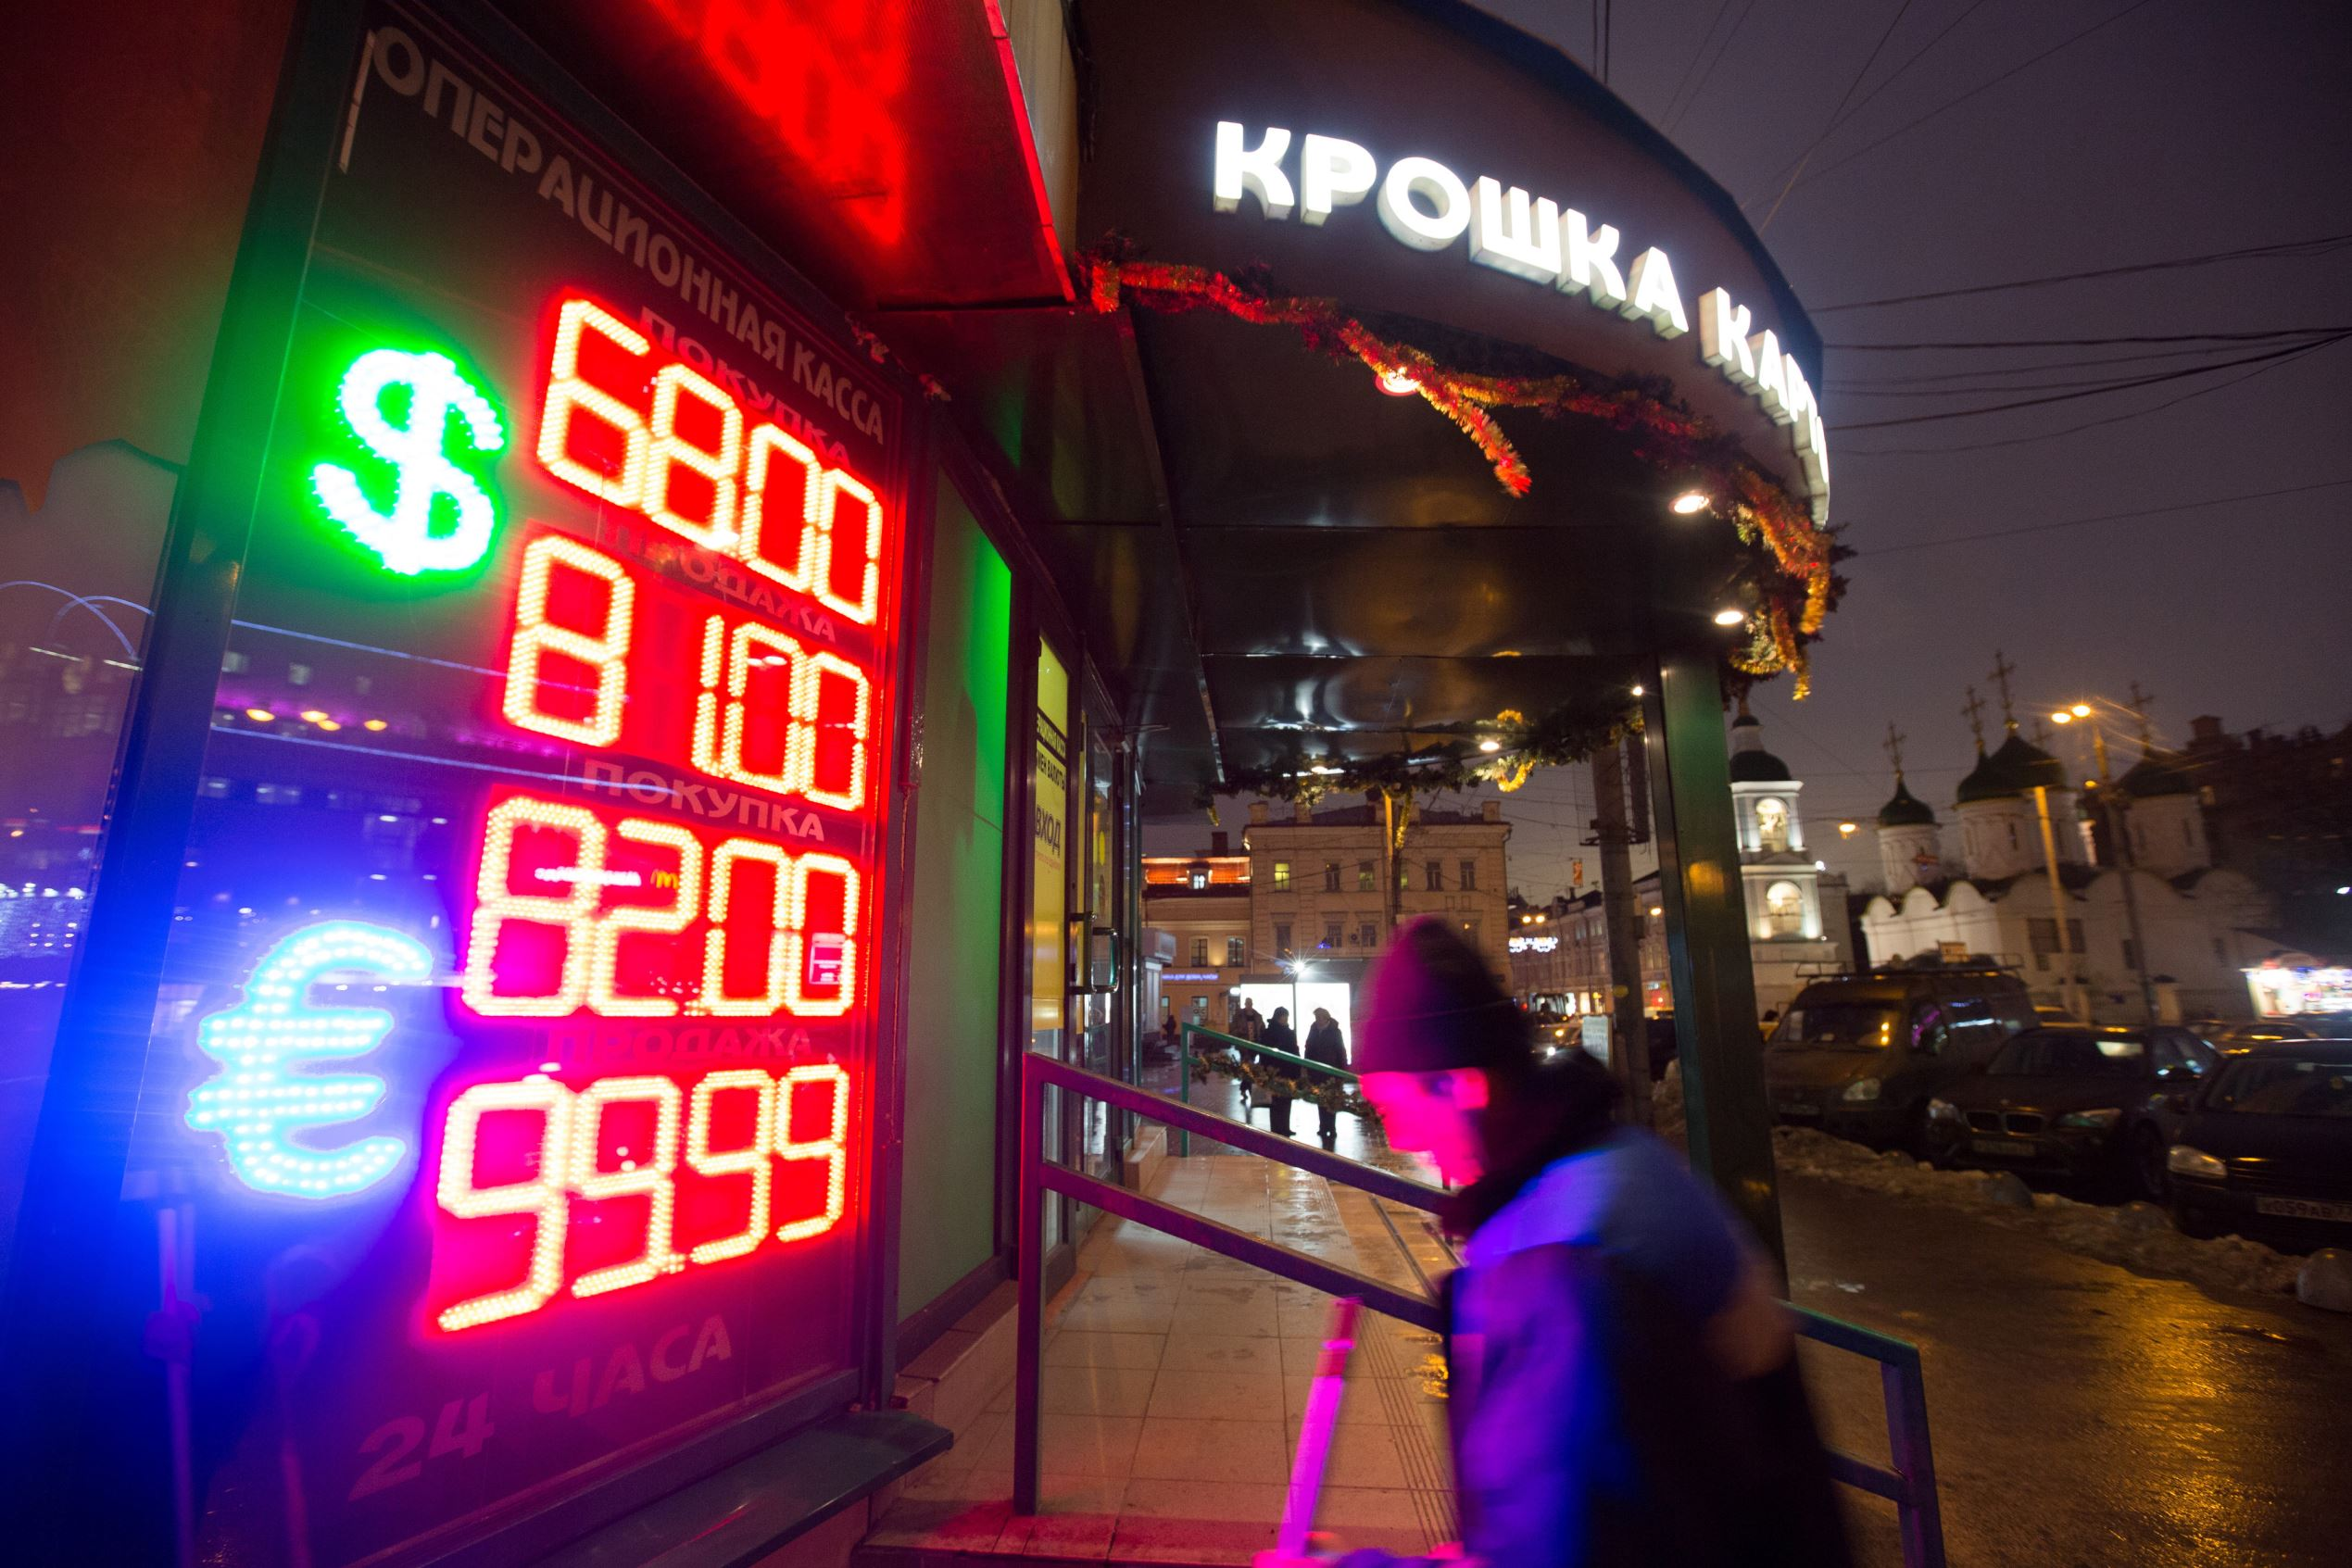 Currency exchange rates are displayed outside an exchange bureau in Moscow, December 16, 2014.